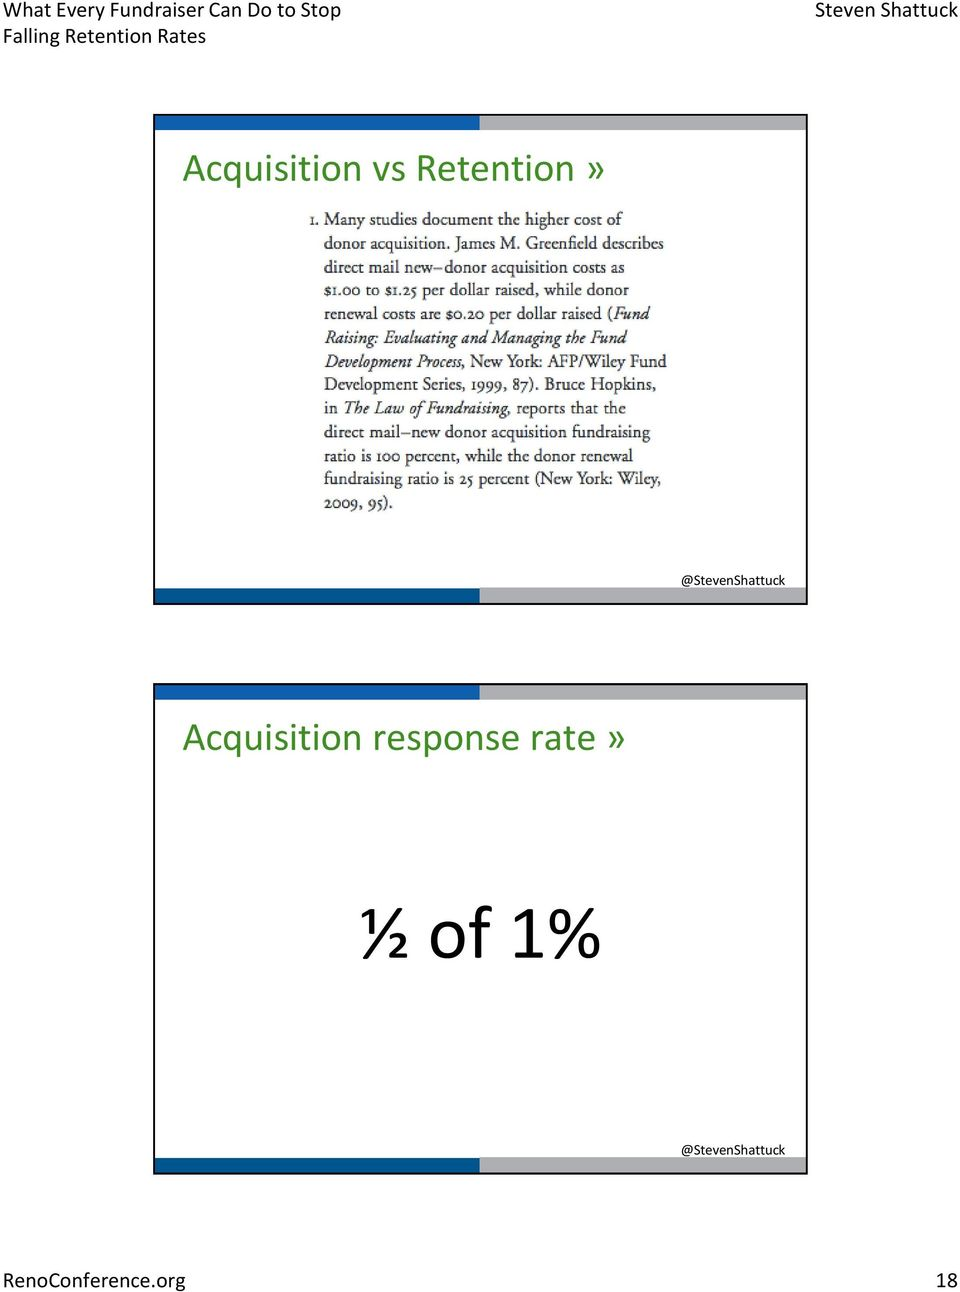 Acquisition response